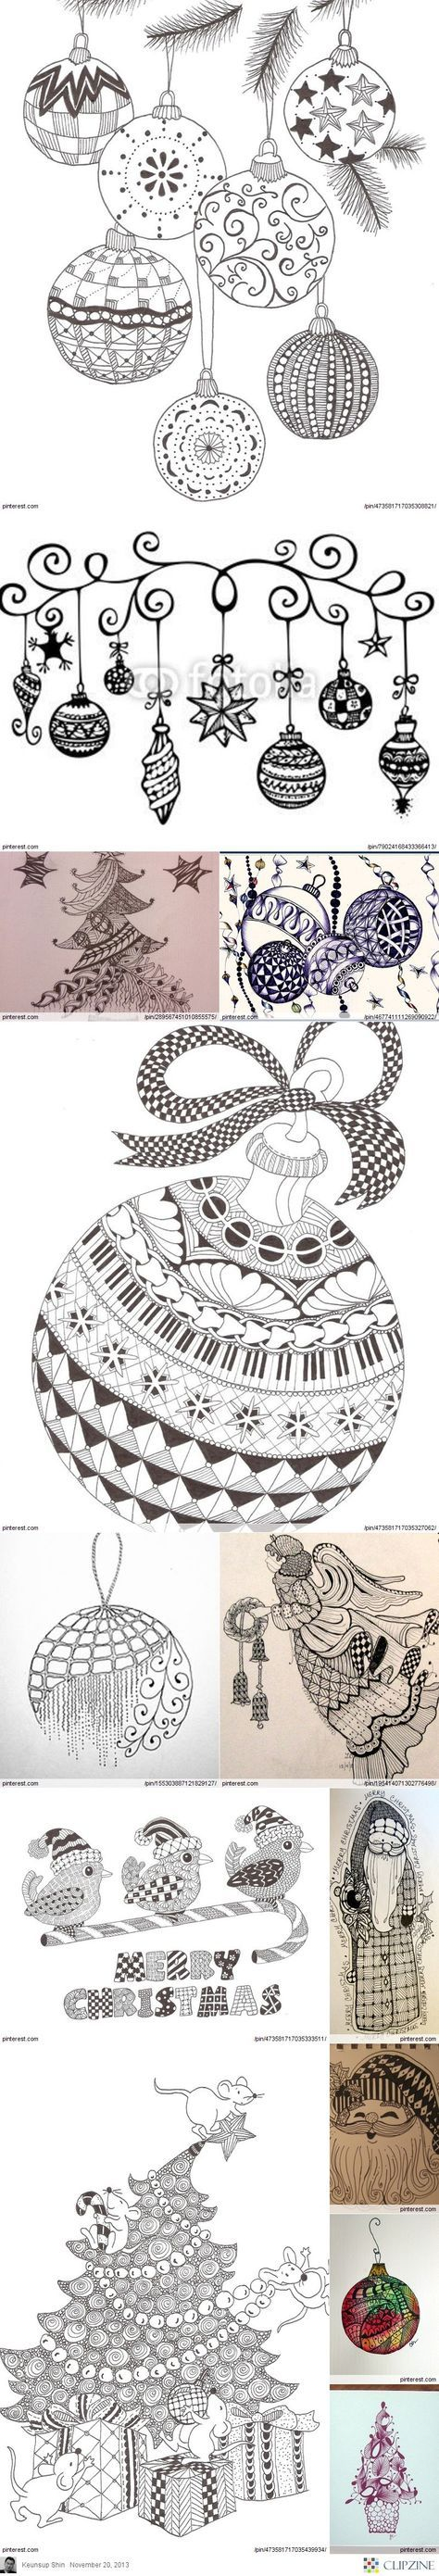 best Doodle und Zentangle images on Pinterest Christmas crafts